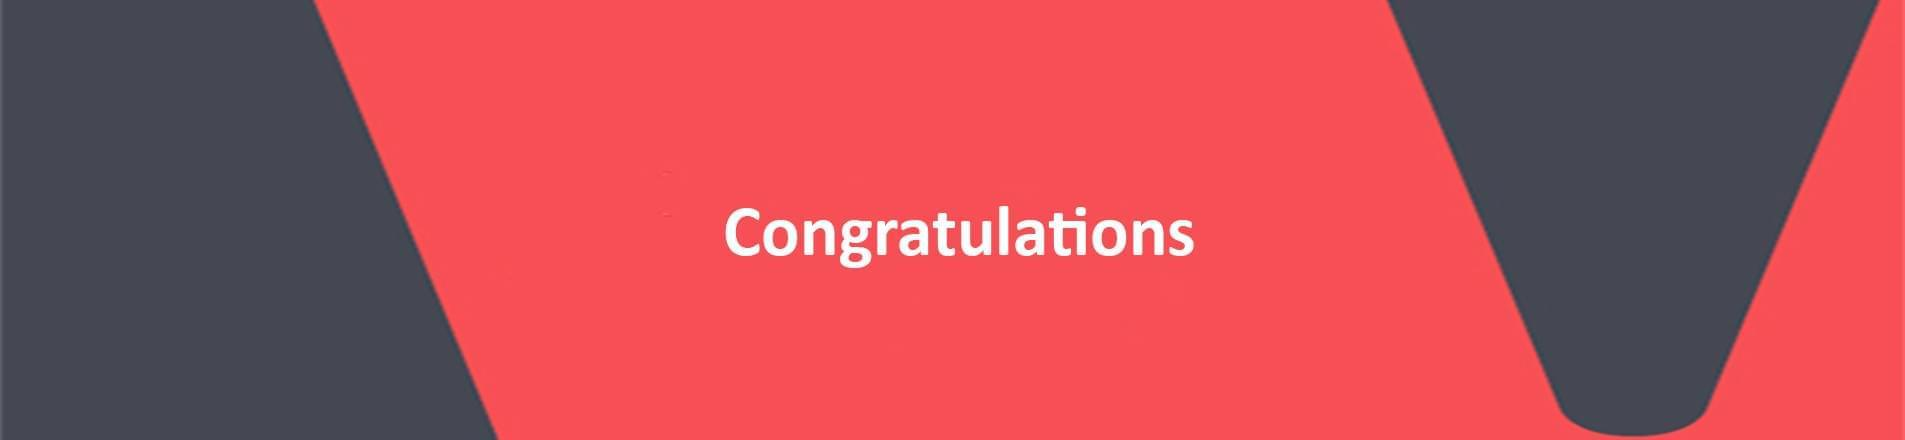 The word congratulations on a red VERCIDA branded background